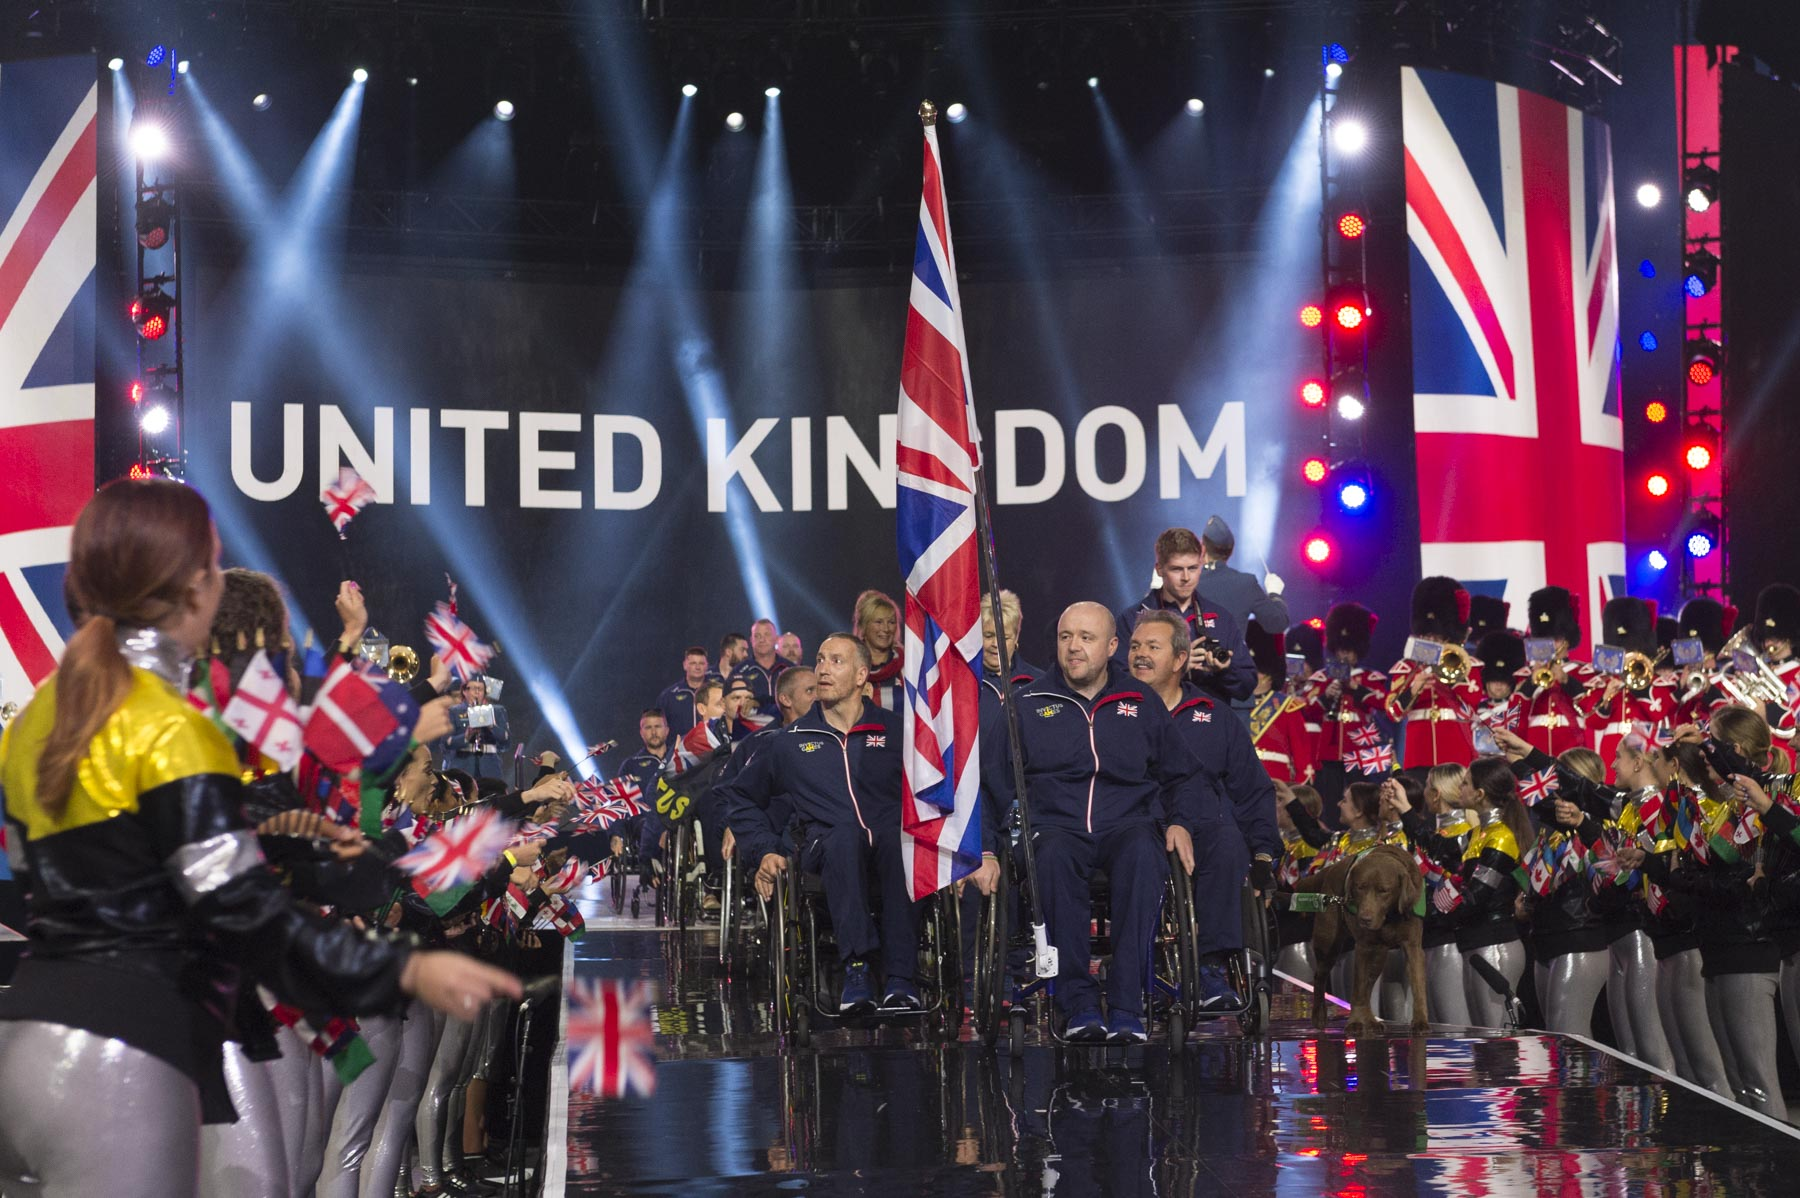 Seventeen nations paraded into the Air Canada Centre. The third Invictus Games, which demonstrate soldiers' and veterans' endless drive to overcome and the power of sport on their journey to recovery, will be held from September 23 to 30, 2017, in Toronto.